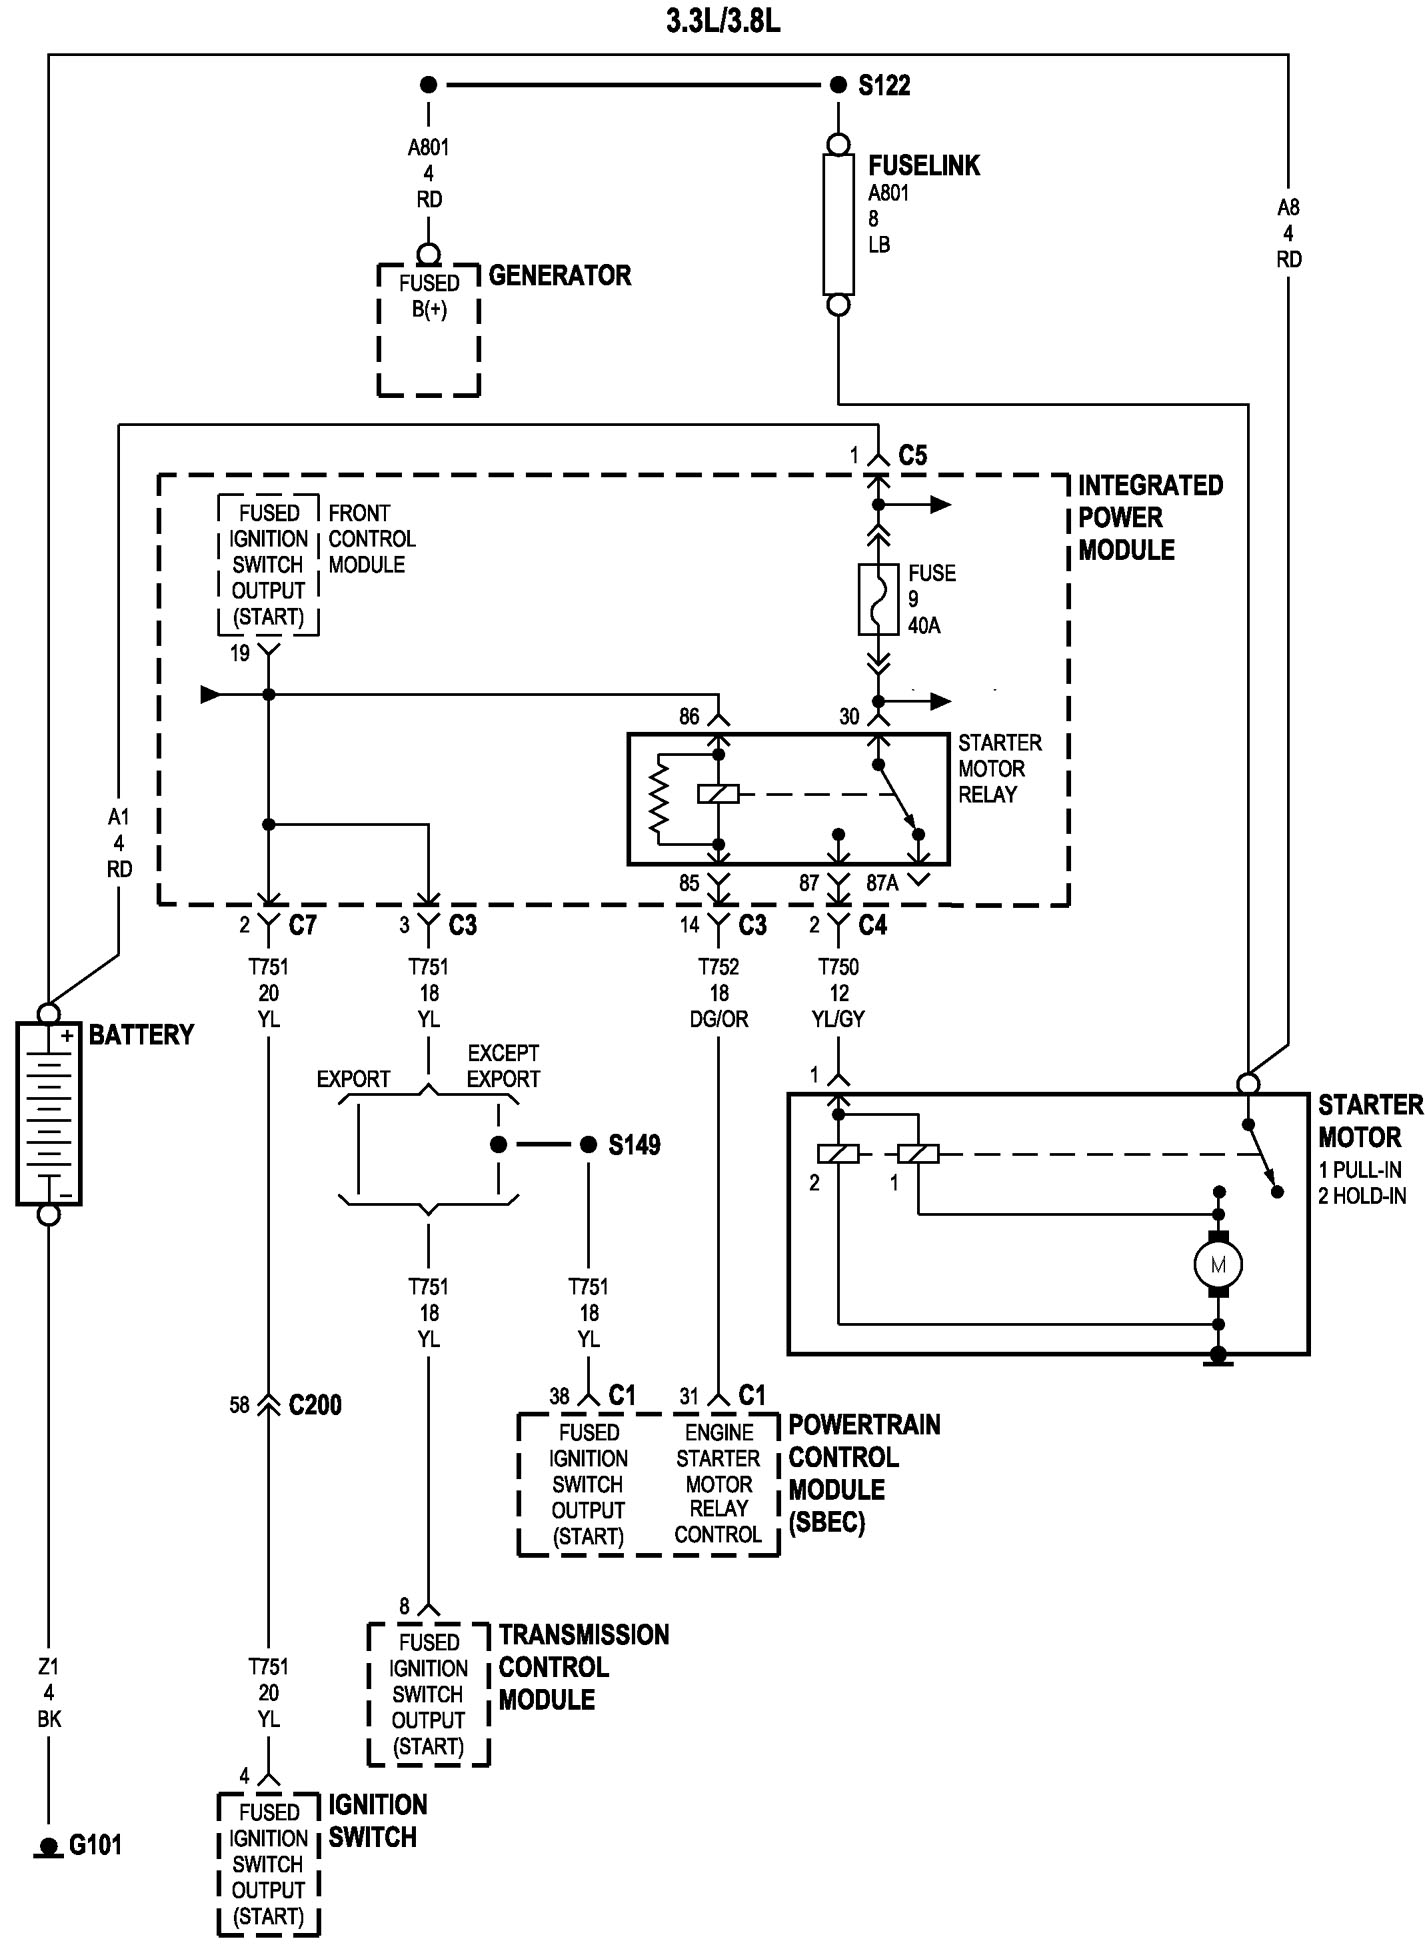 2002 Chrysler Voyager 2.4 Engine Wiring Diagram